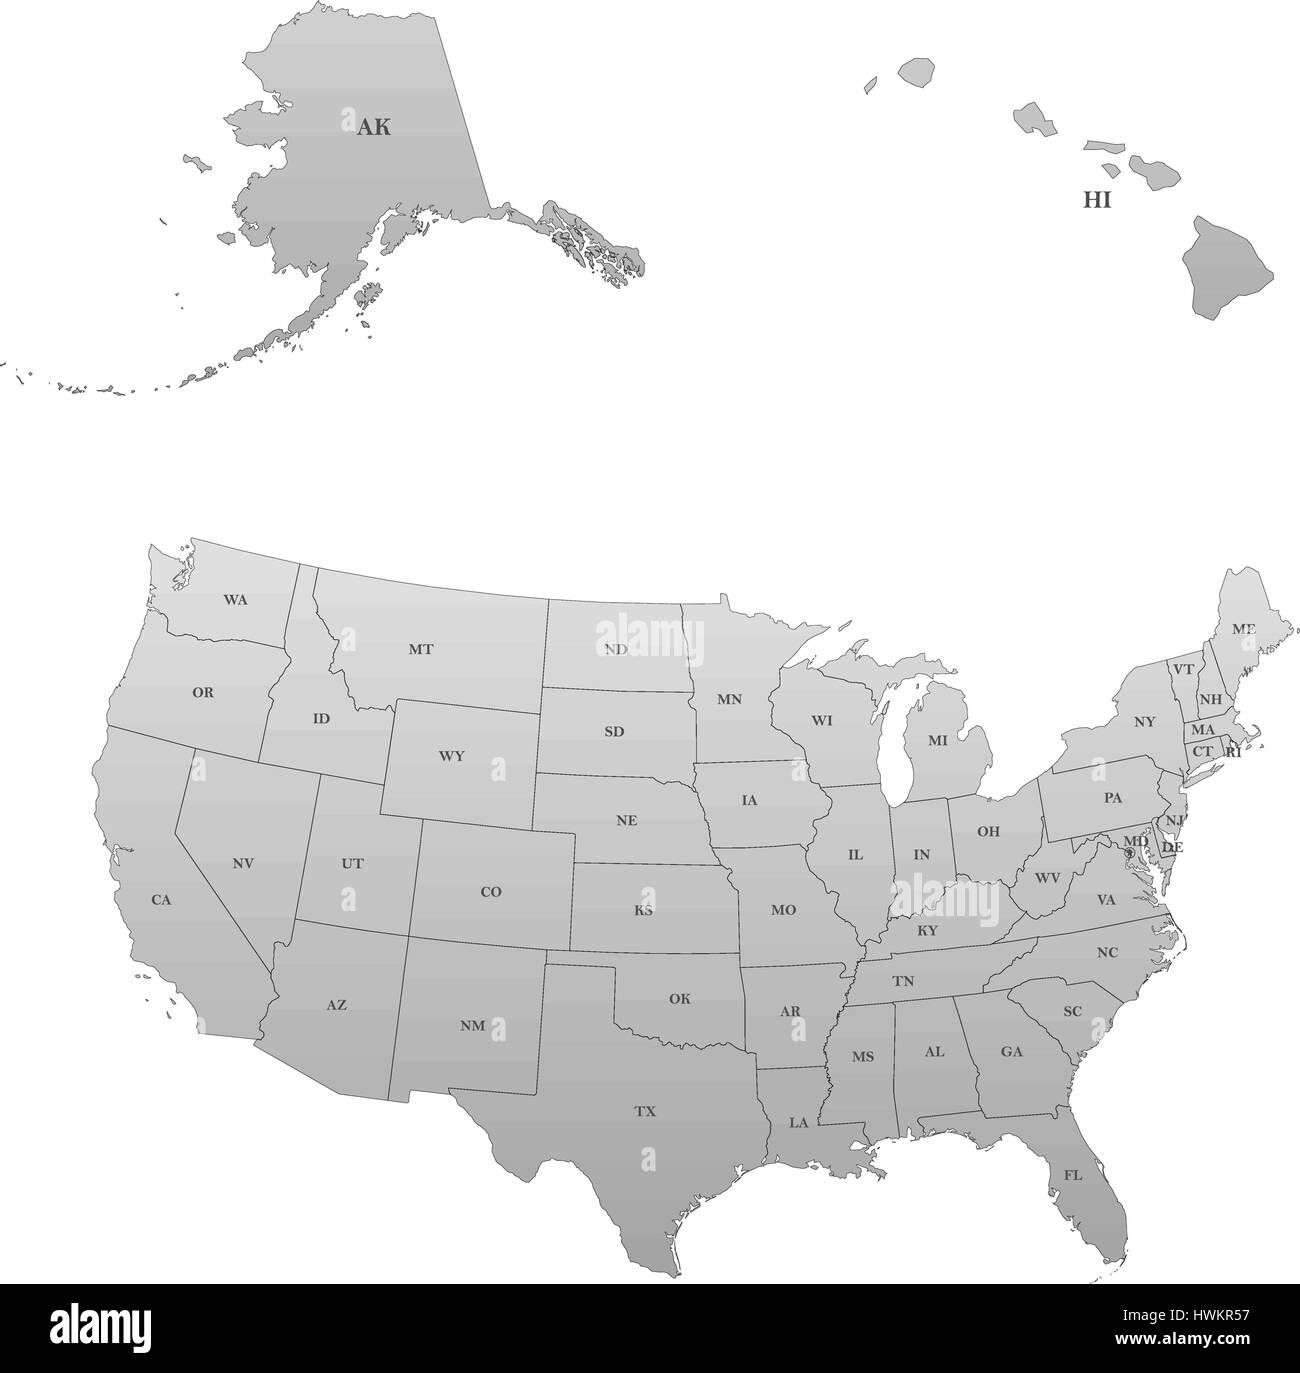 US States Two Letter Abbreviations Map Maps Of States Of USA - Map of the us with state abbreviations